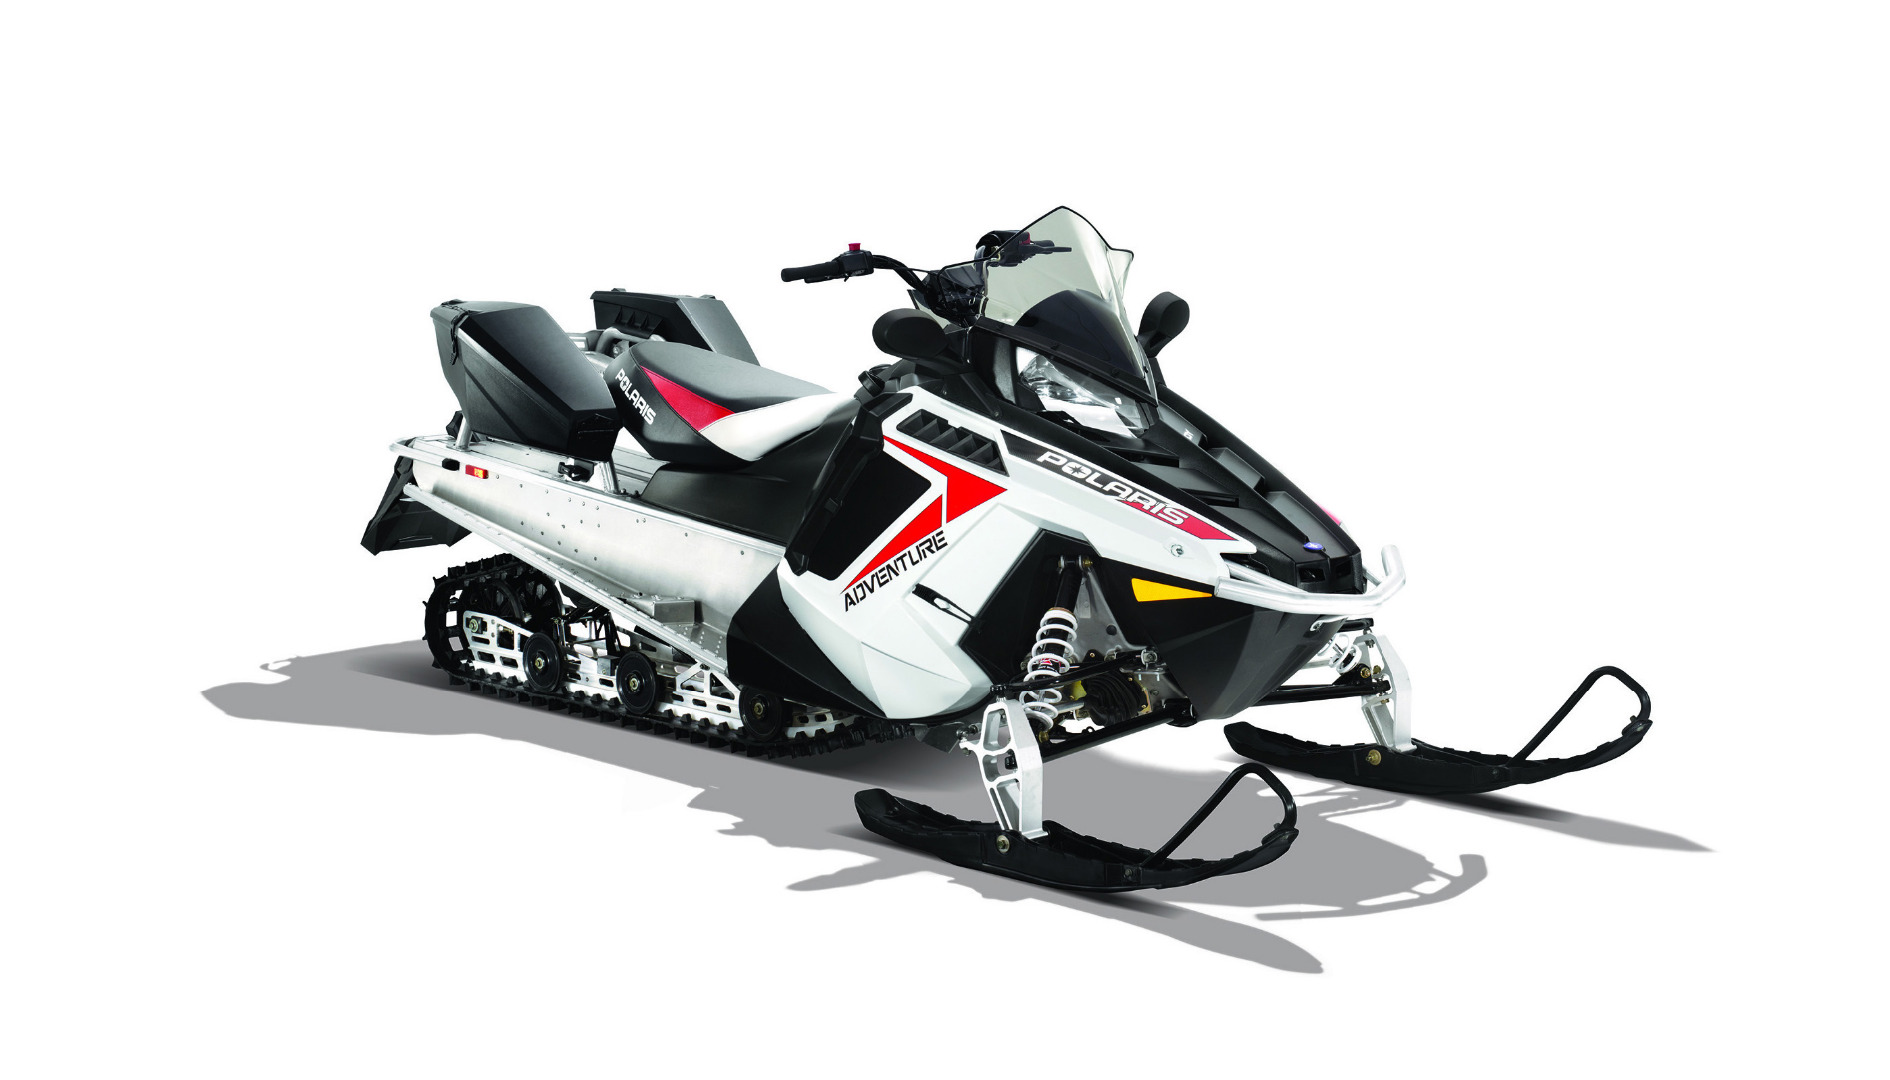 Снегоход 550 INDY ADVENTURE white/black 2014